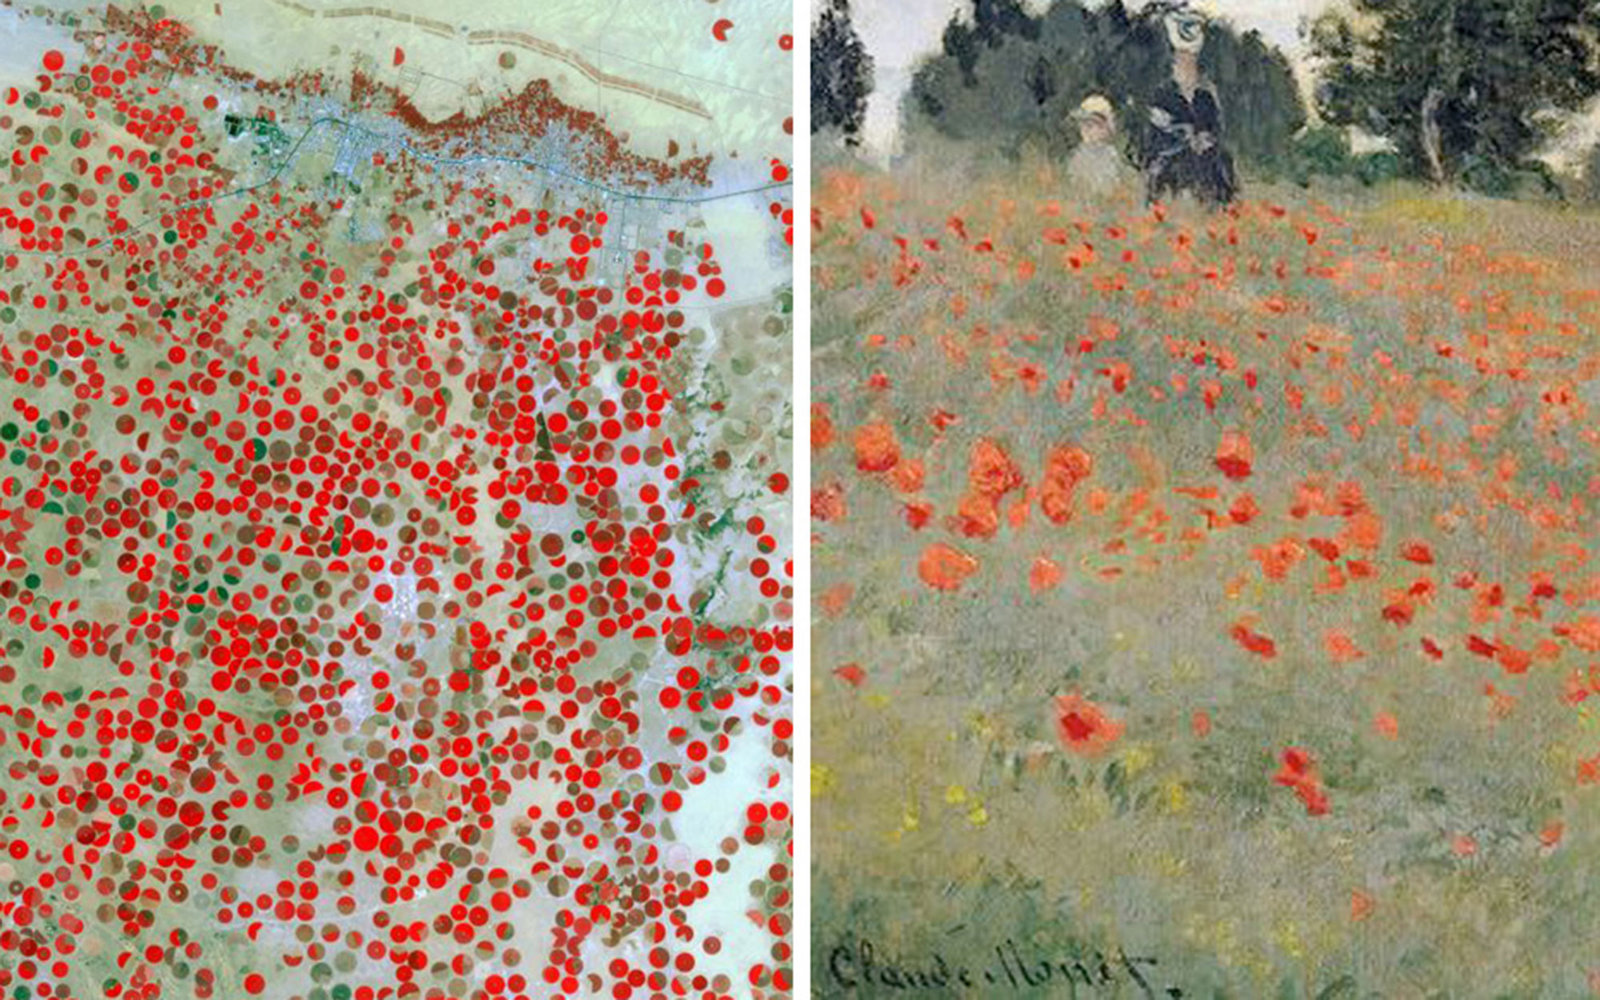 Pictured left: The Wadi Al Dawasir region of Saudi Arabia in the Arabian Desert on March 30, 2013; Pictured right: Claude Monet, Poppies, 1873